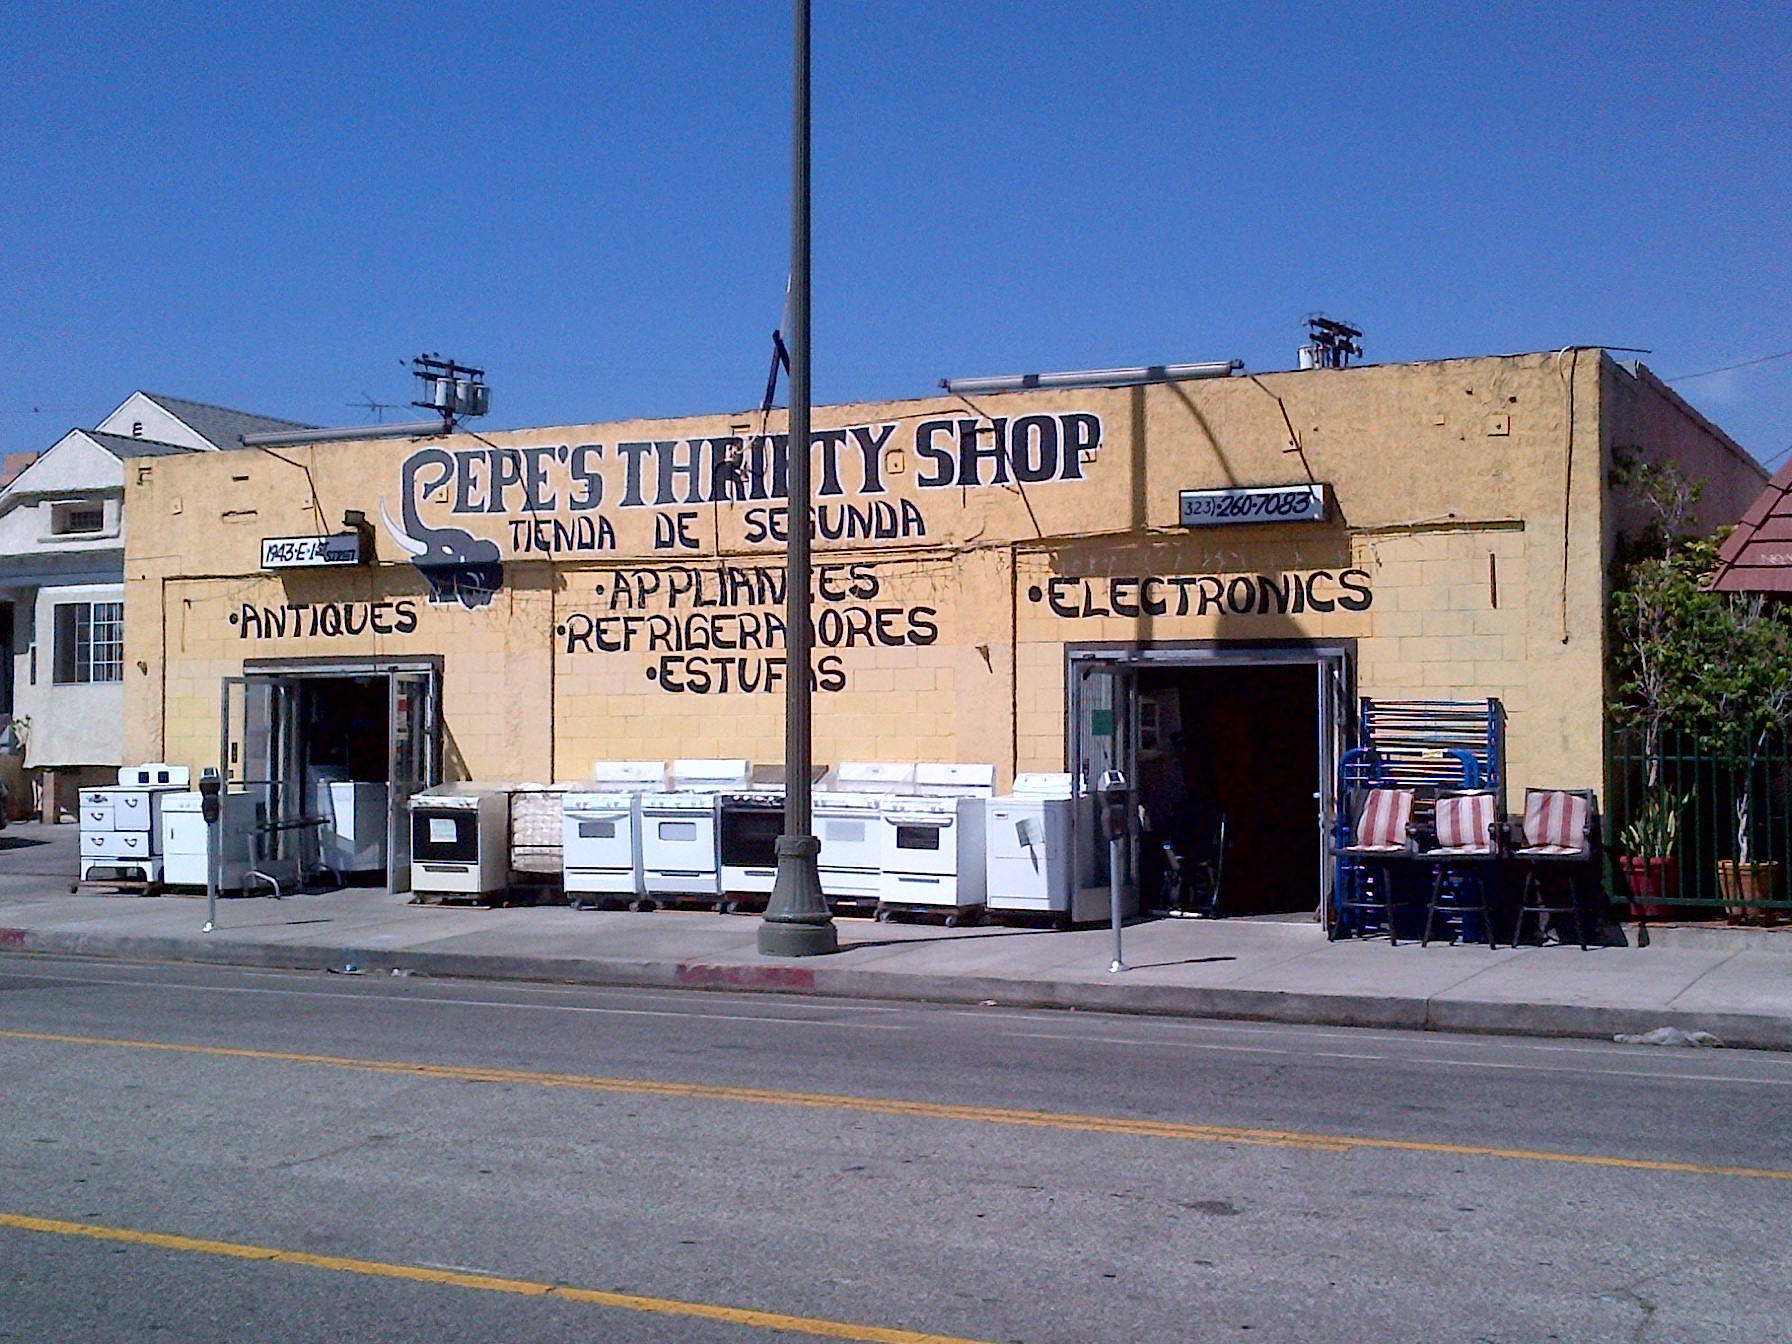 Pepe's Thrifty Shop